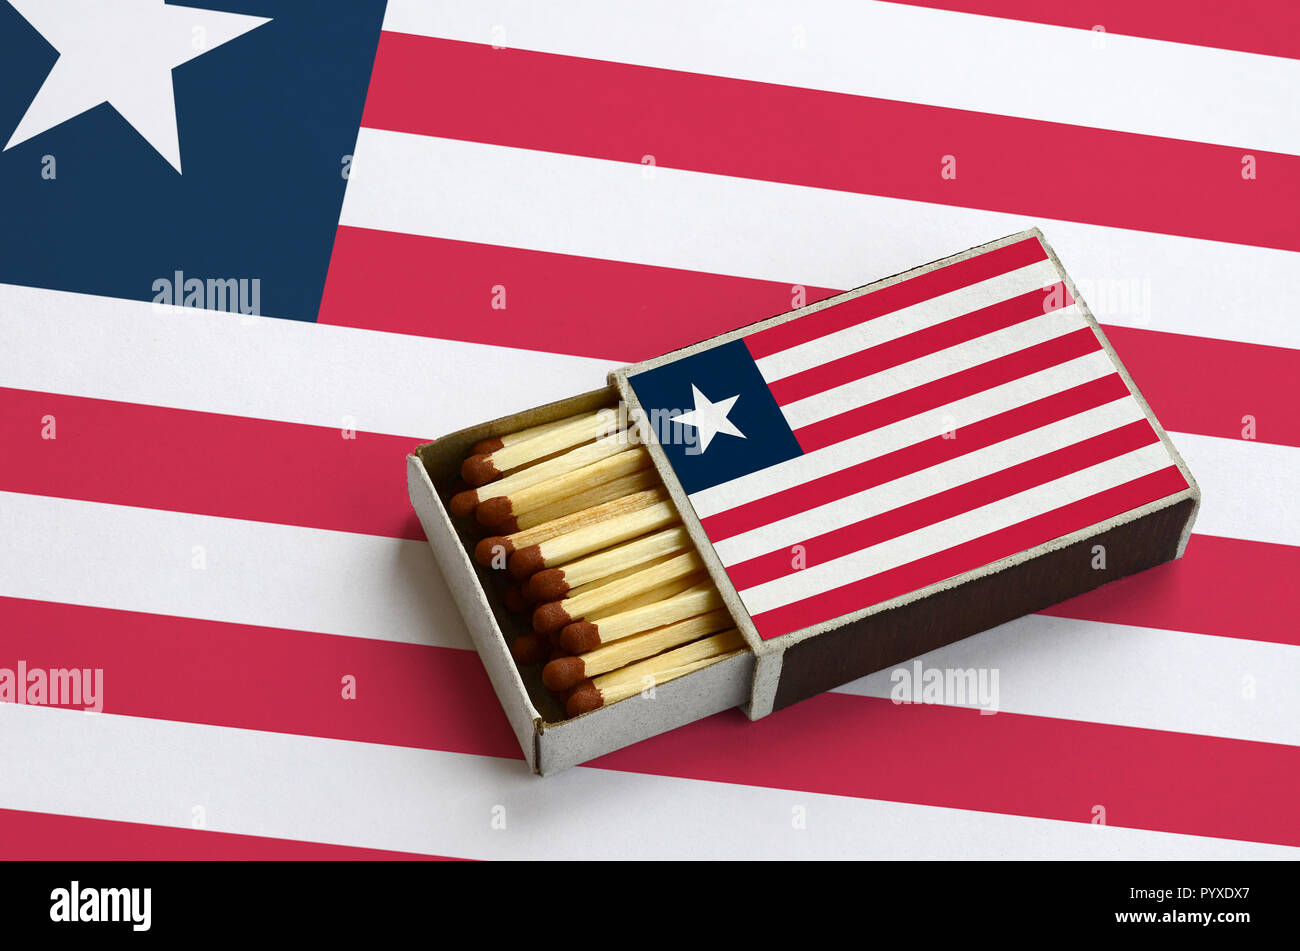 Liberia flag  is shown in an open matchbox, which is filled with matches and lies on a large flag. - Stock Image